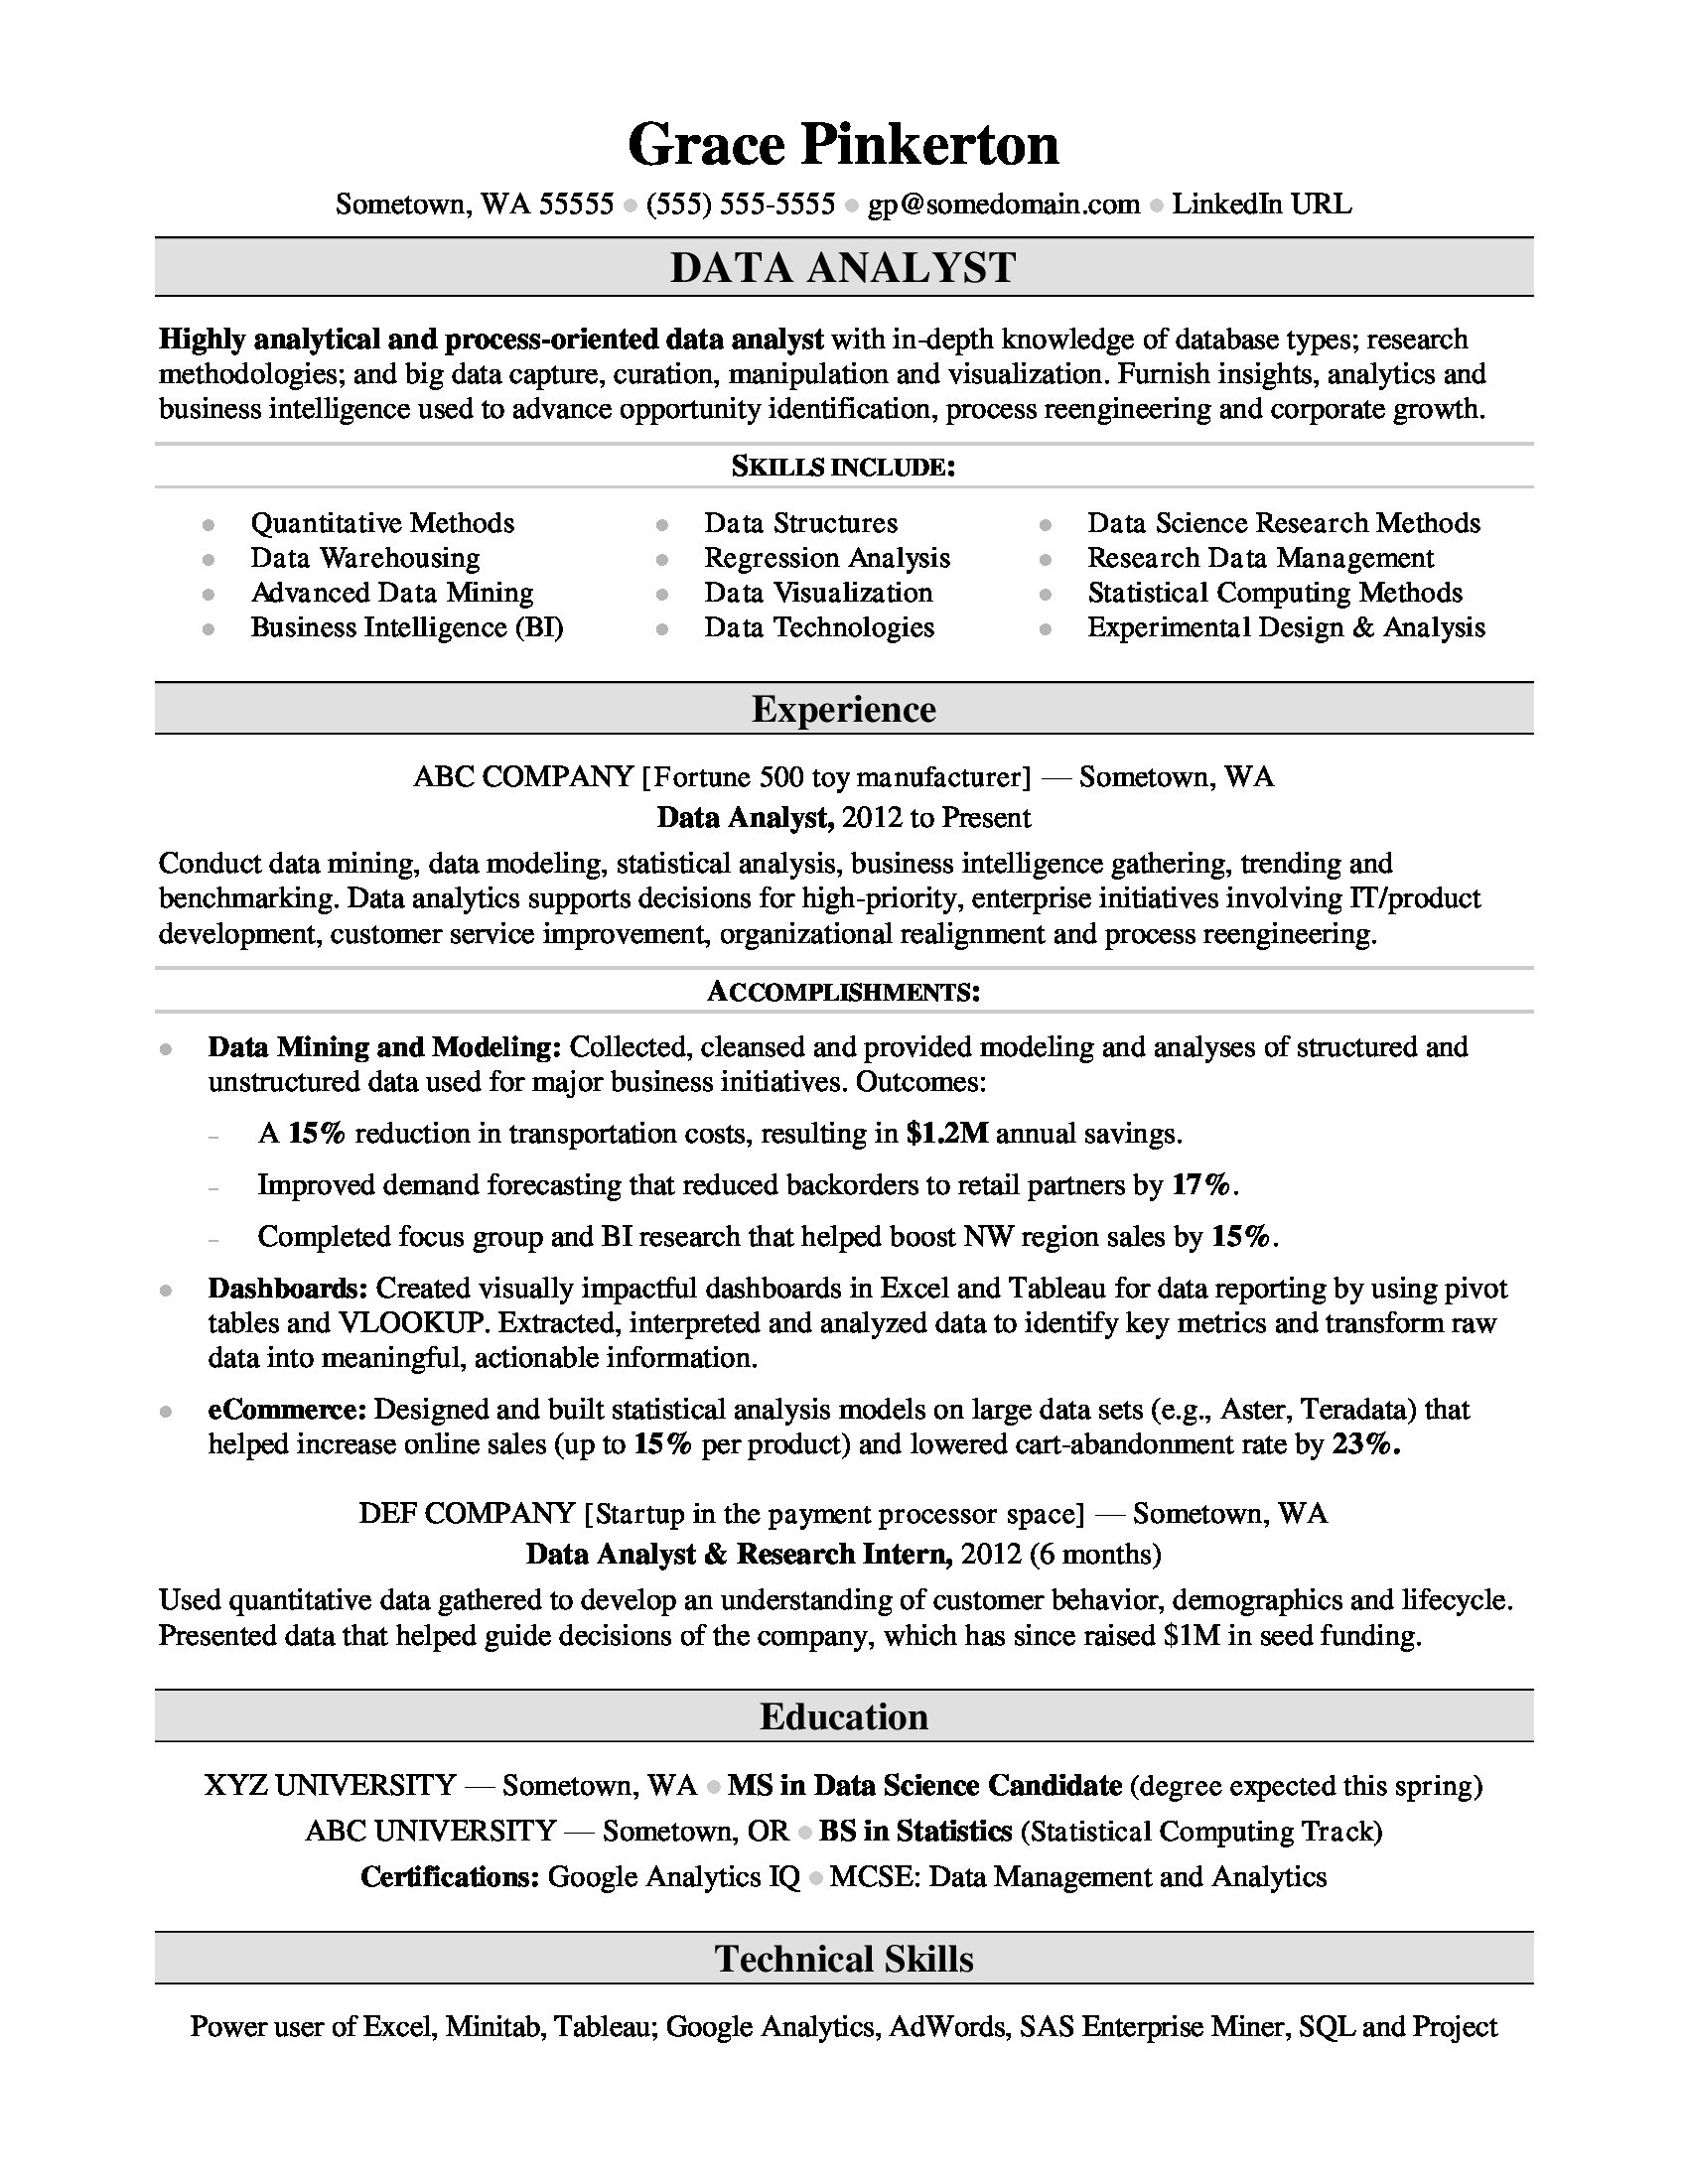 data analyst resume sample - Data Processor Resume